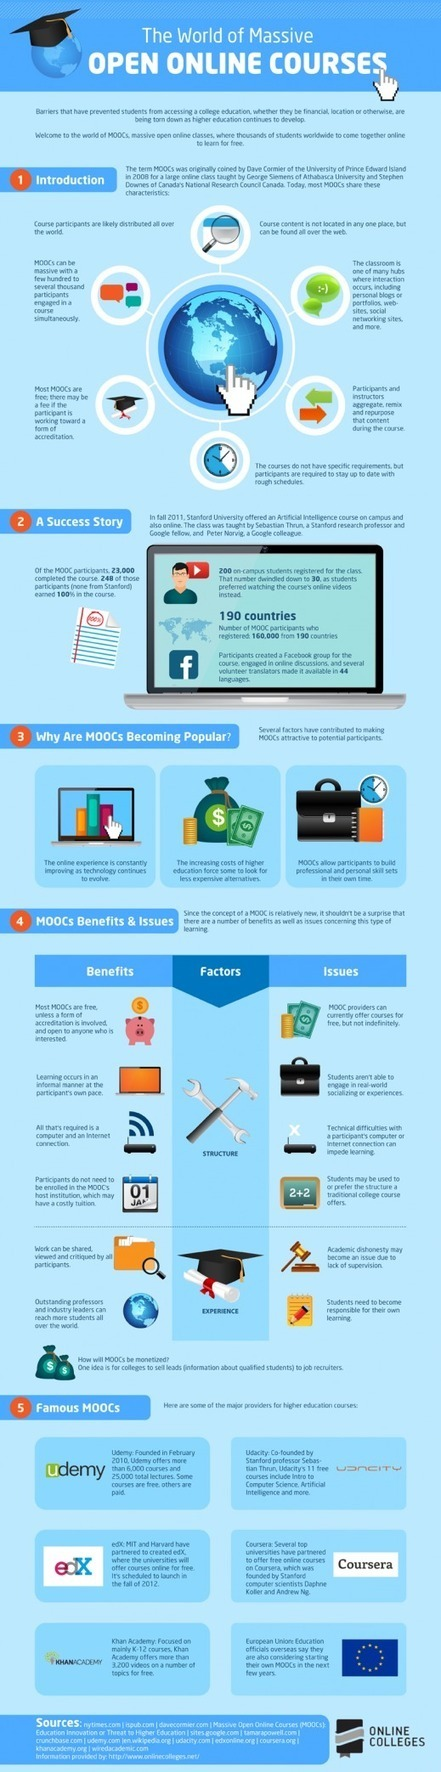 The World of MOOCs | Social media and education | Scoop.it